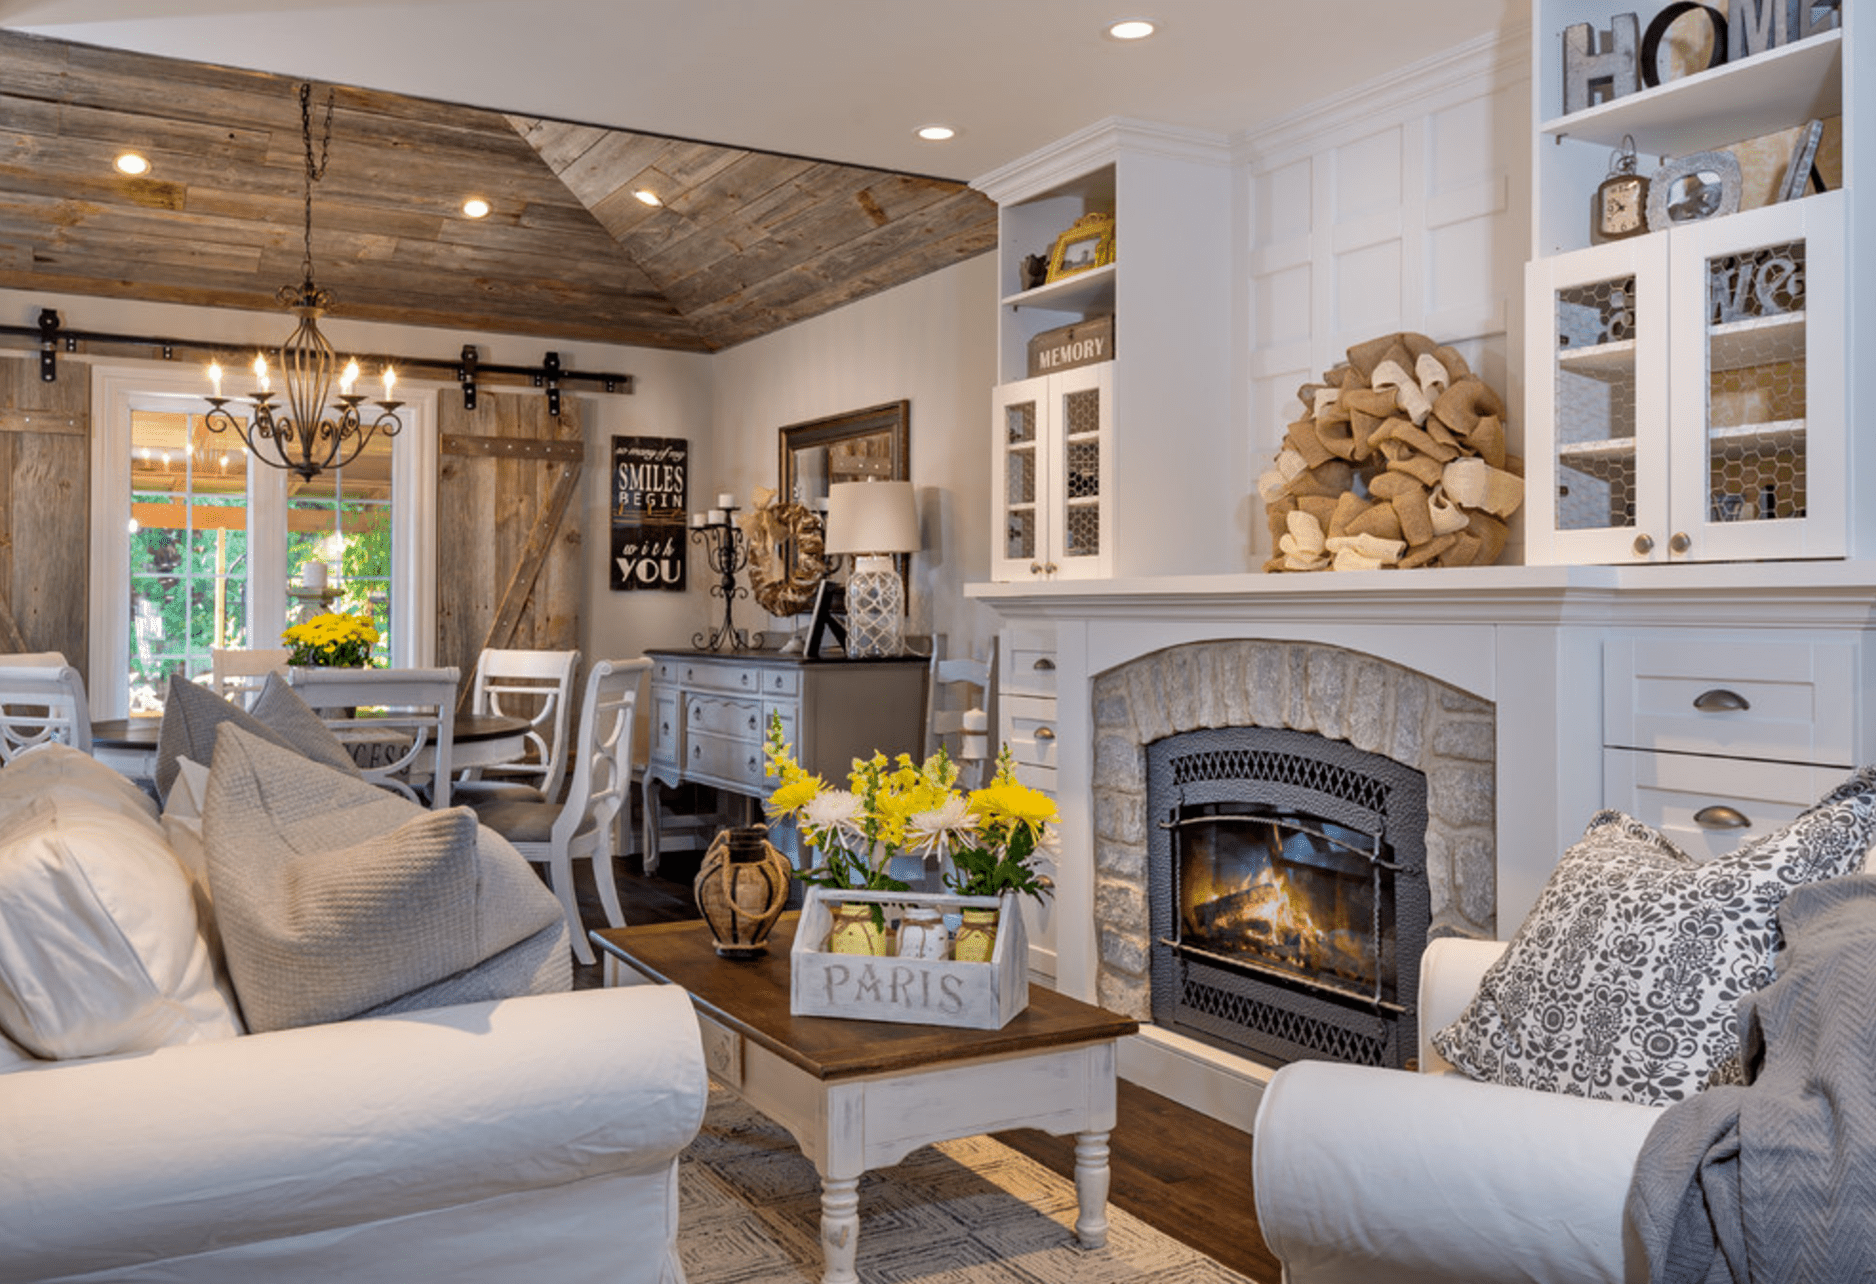 amazing ideas farmhouse city delightful decorating coastal living tour bungalow art abstract beach family diy rooms furniture beachy outstanding decor room